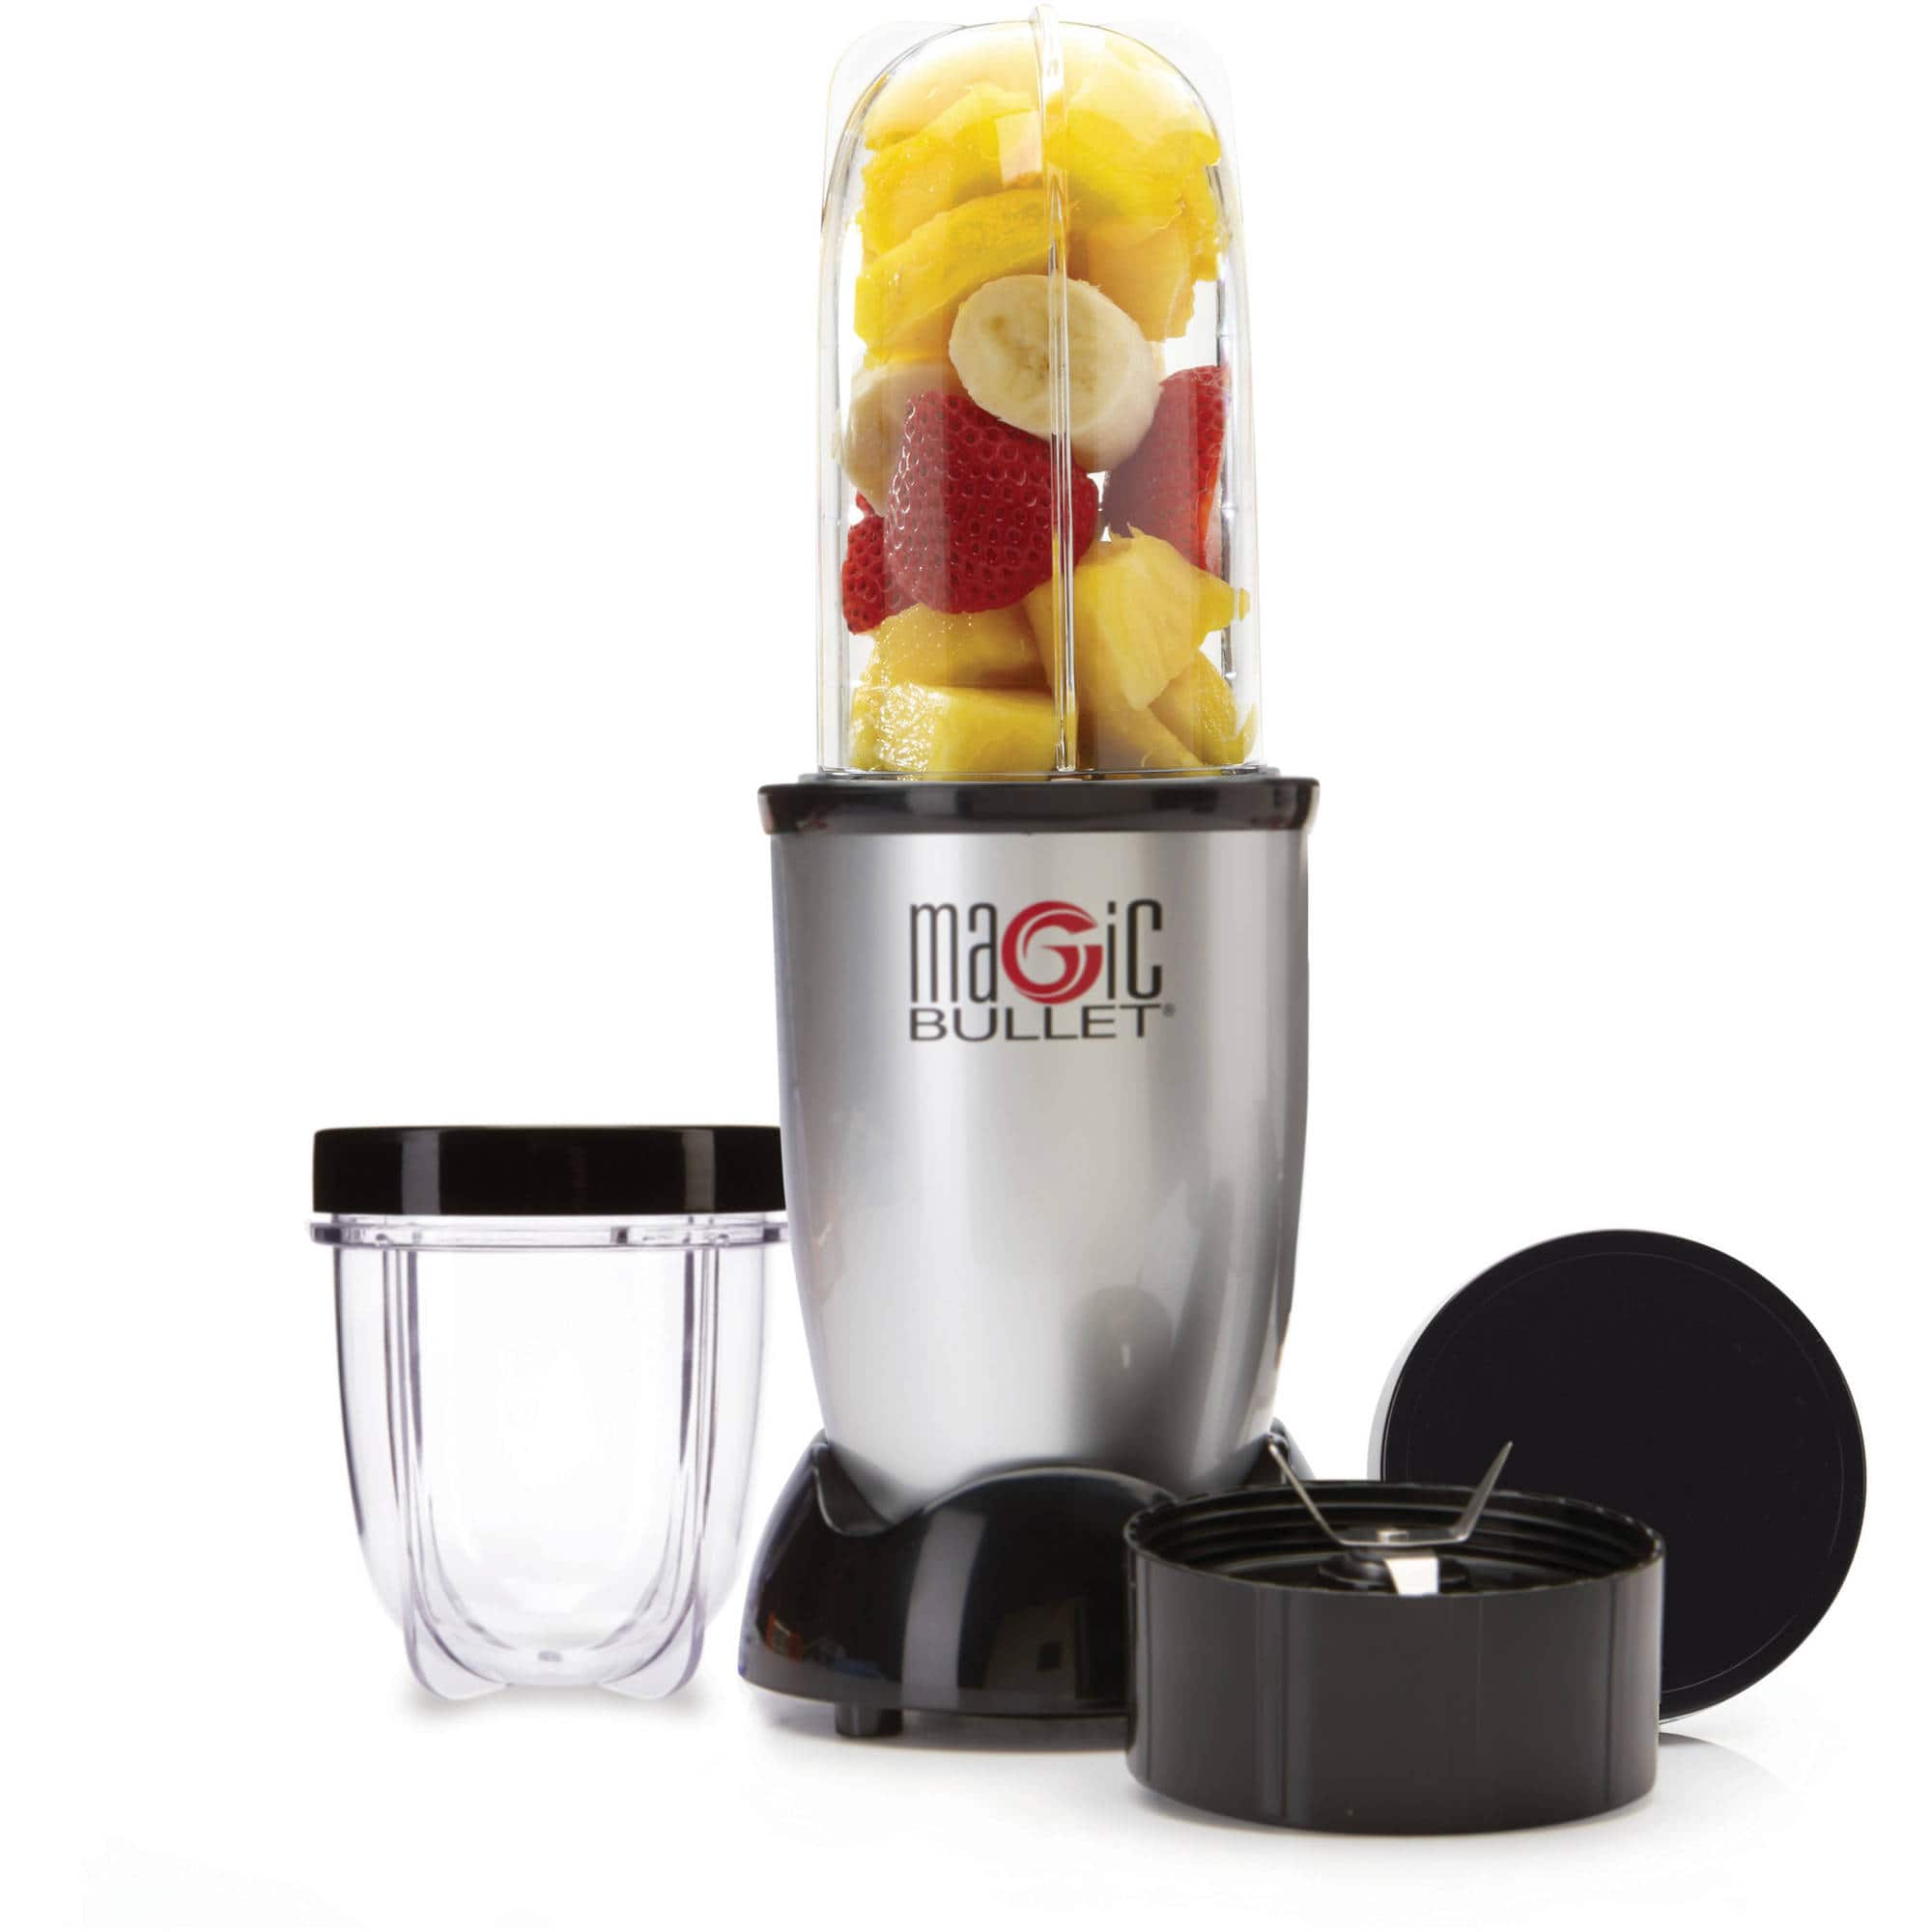 Magic Bullet, 7-Piece, Silver -  $15 in store pickup only or $10 at select stores - Walmart YMMV